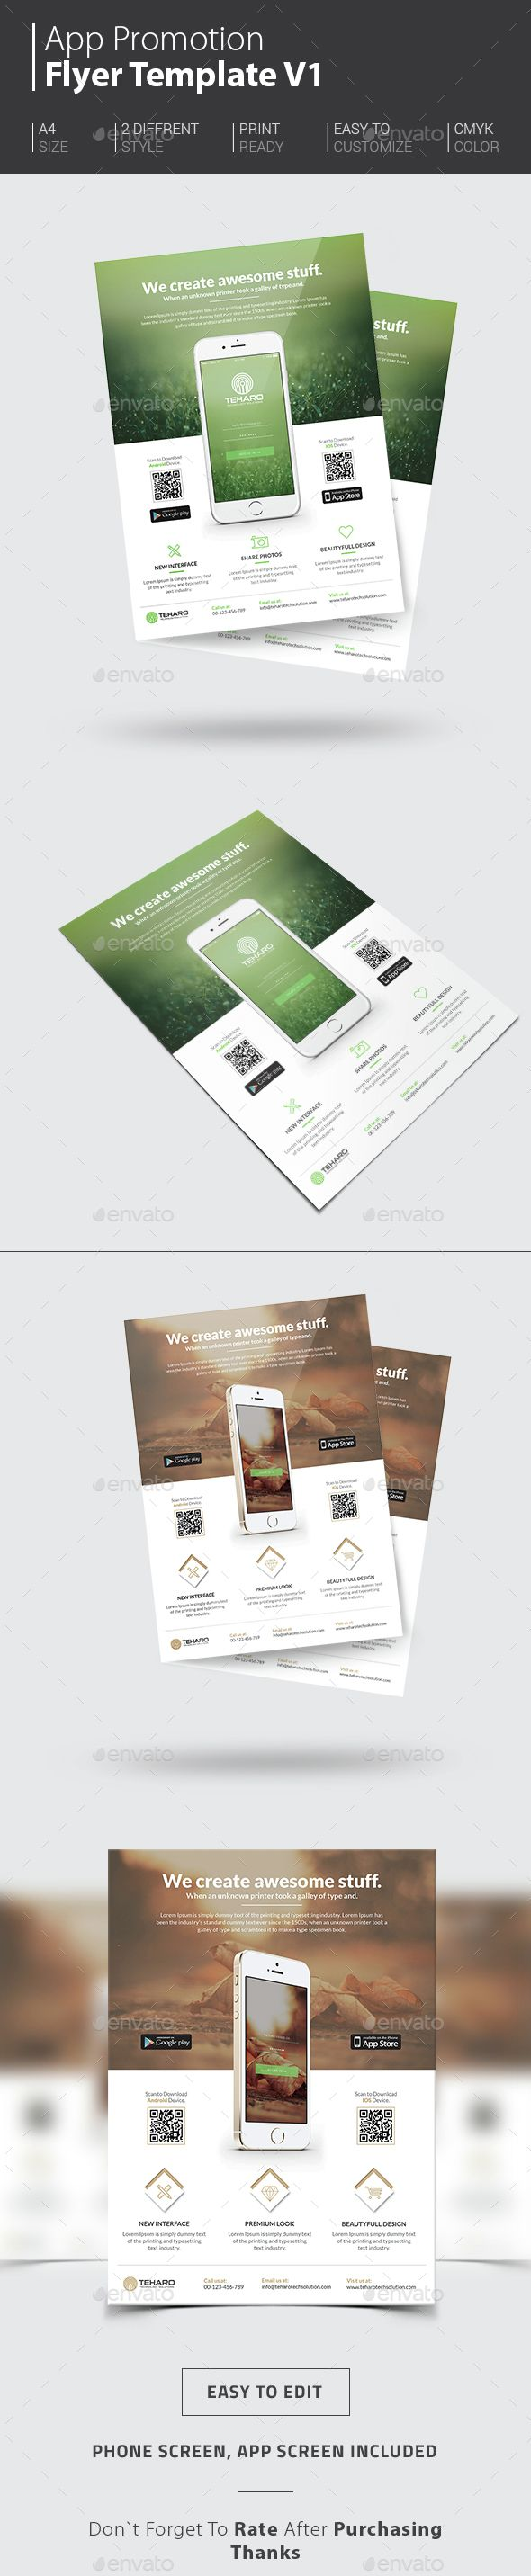 App Promotion Flyer - Commerce Flyers | Instant Download http://graphicriver.net/item/app-promotion-flyer/14512352?ref=themedevisers